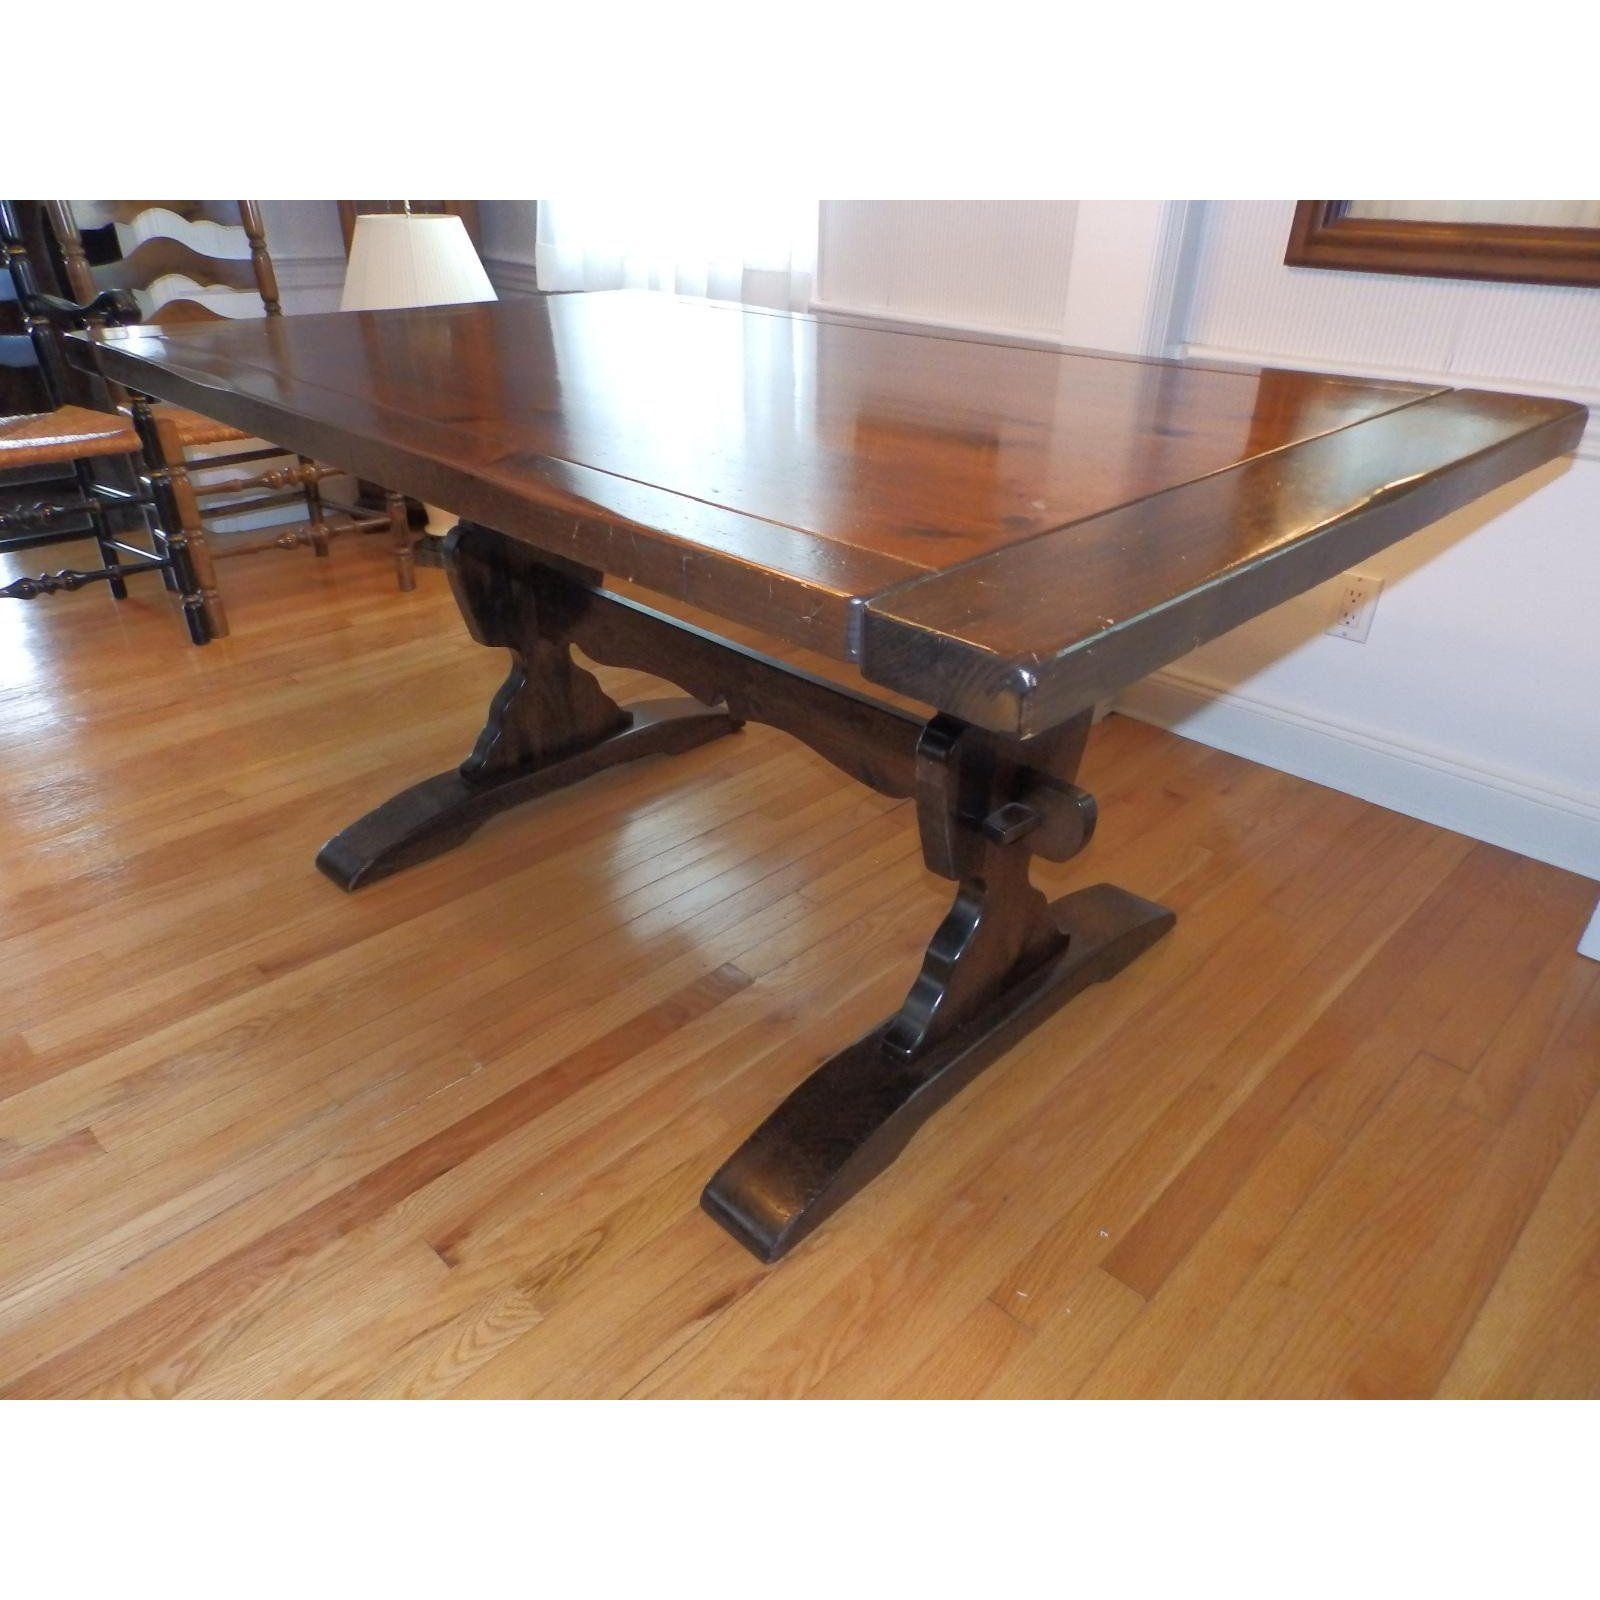 20th Century Early American Ethan Allen Dark Pine Trestle Dining